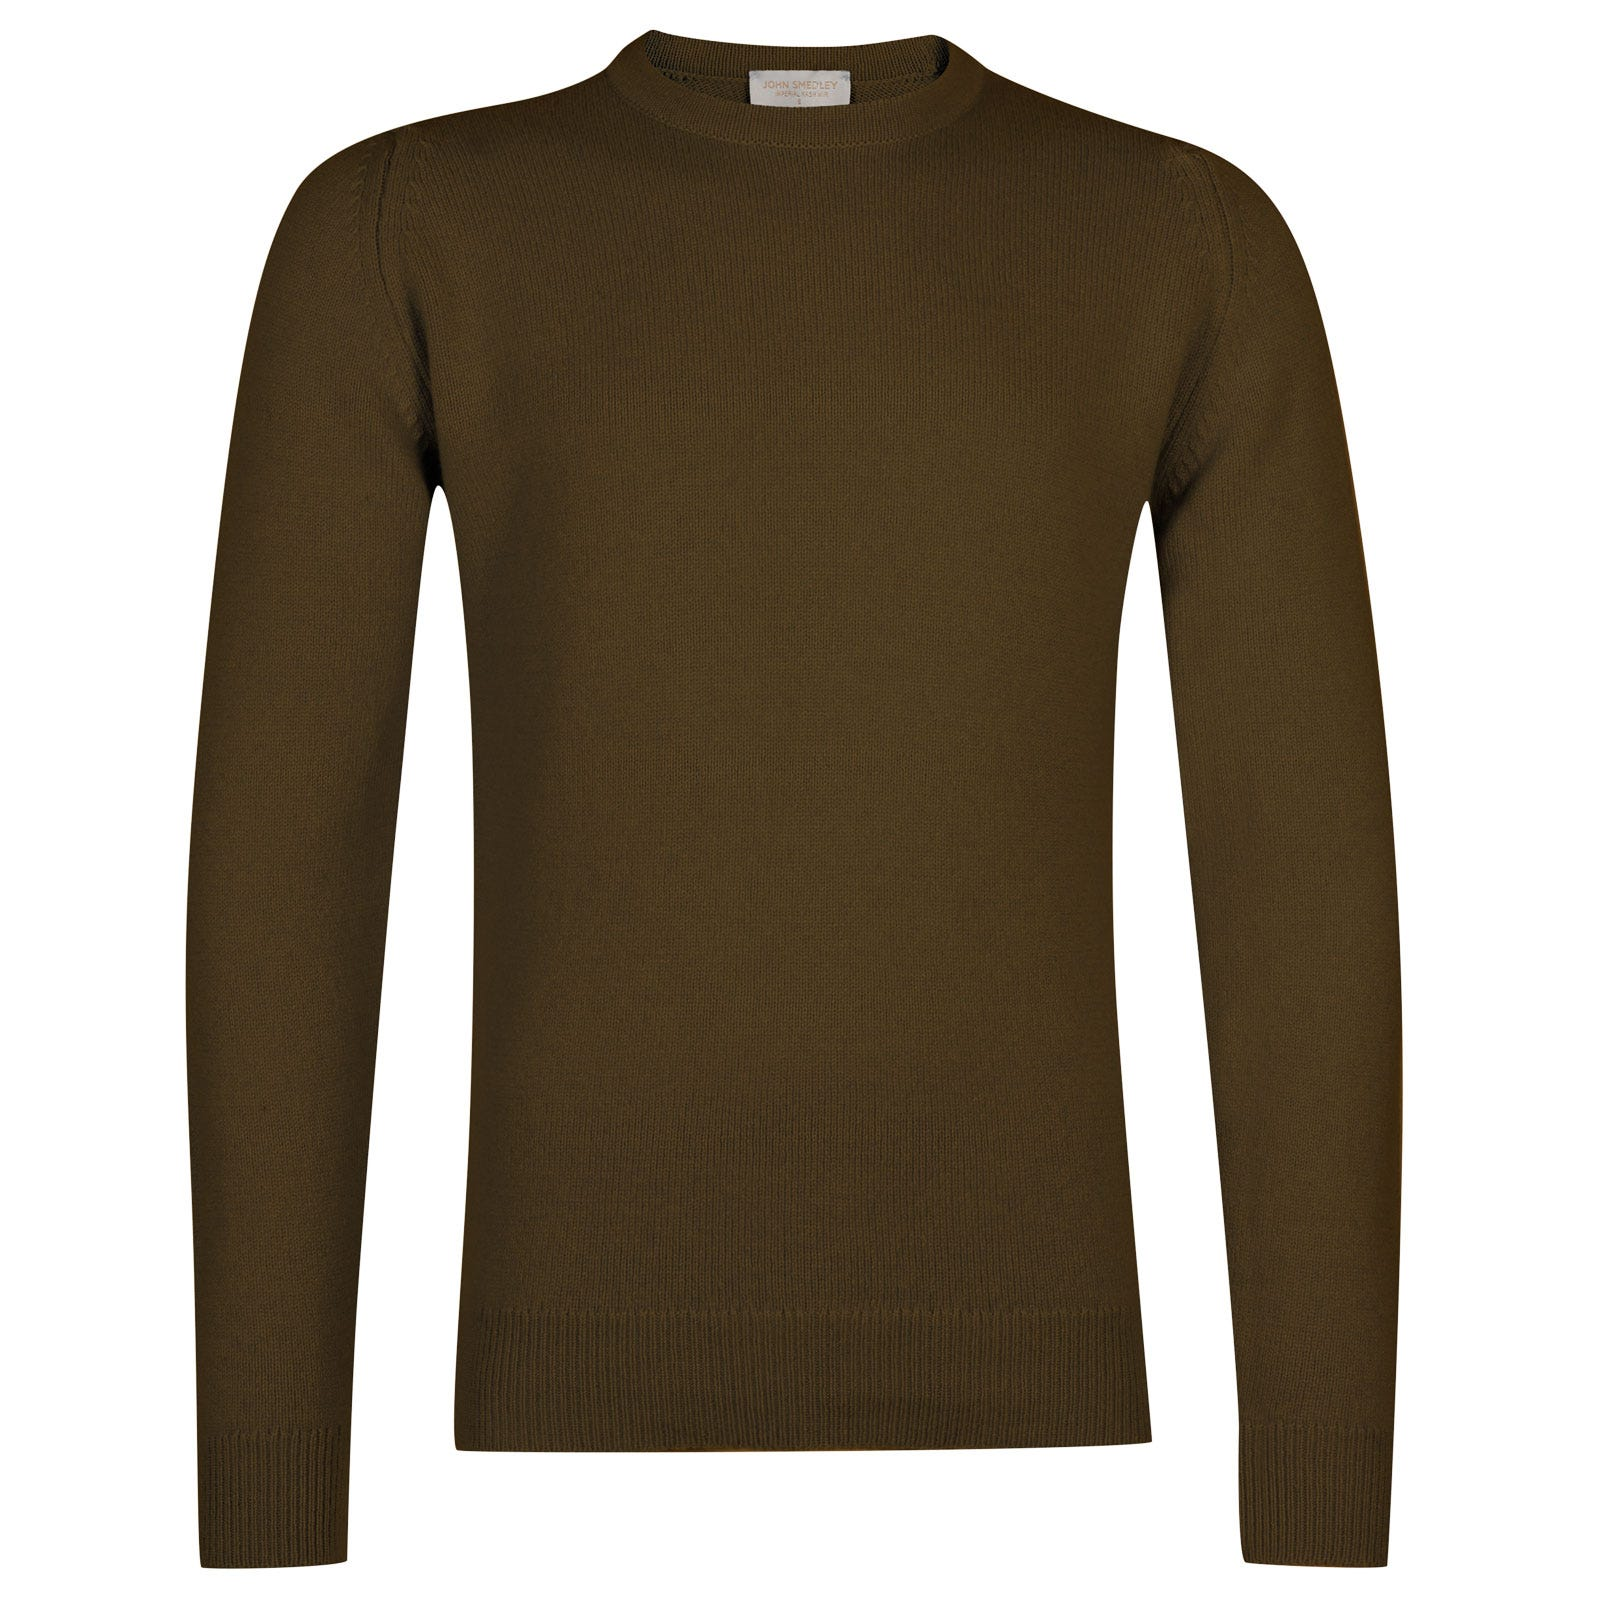 John Smedley Crowford Wool and Cashmere Pullover in Kielder Green-XXL